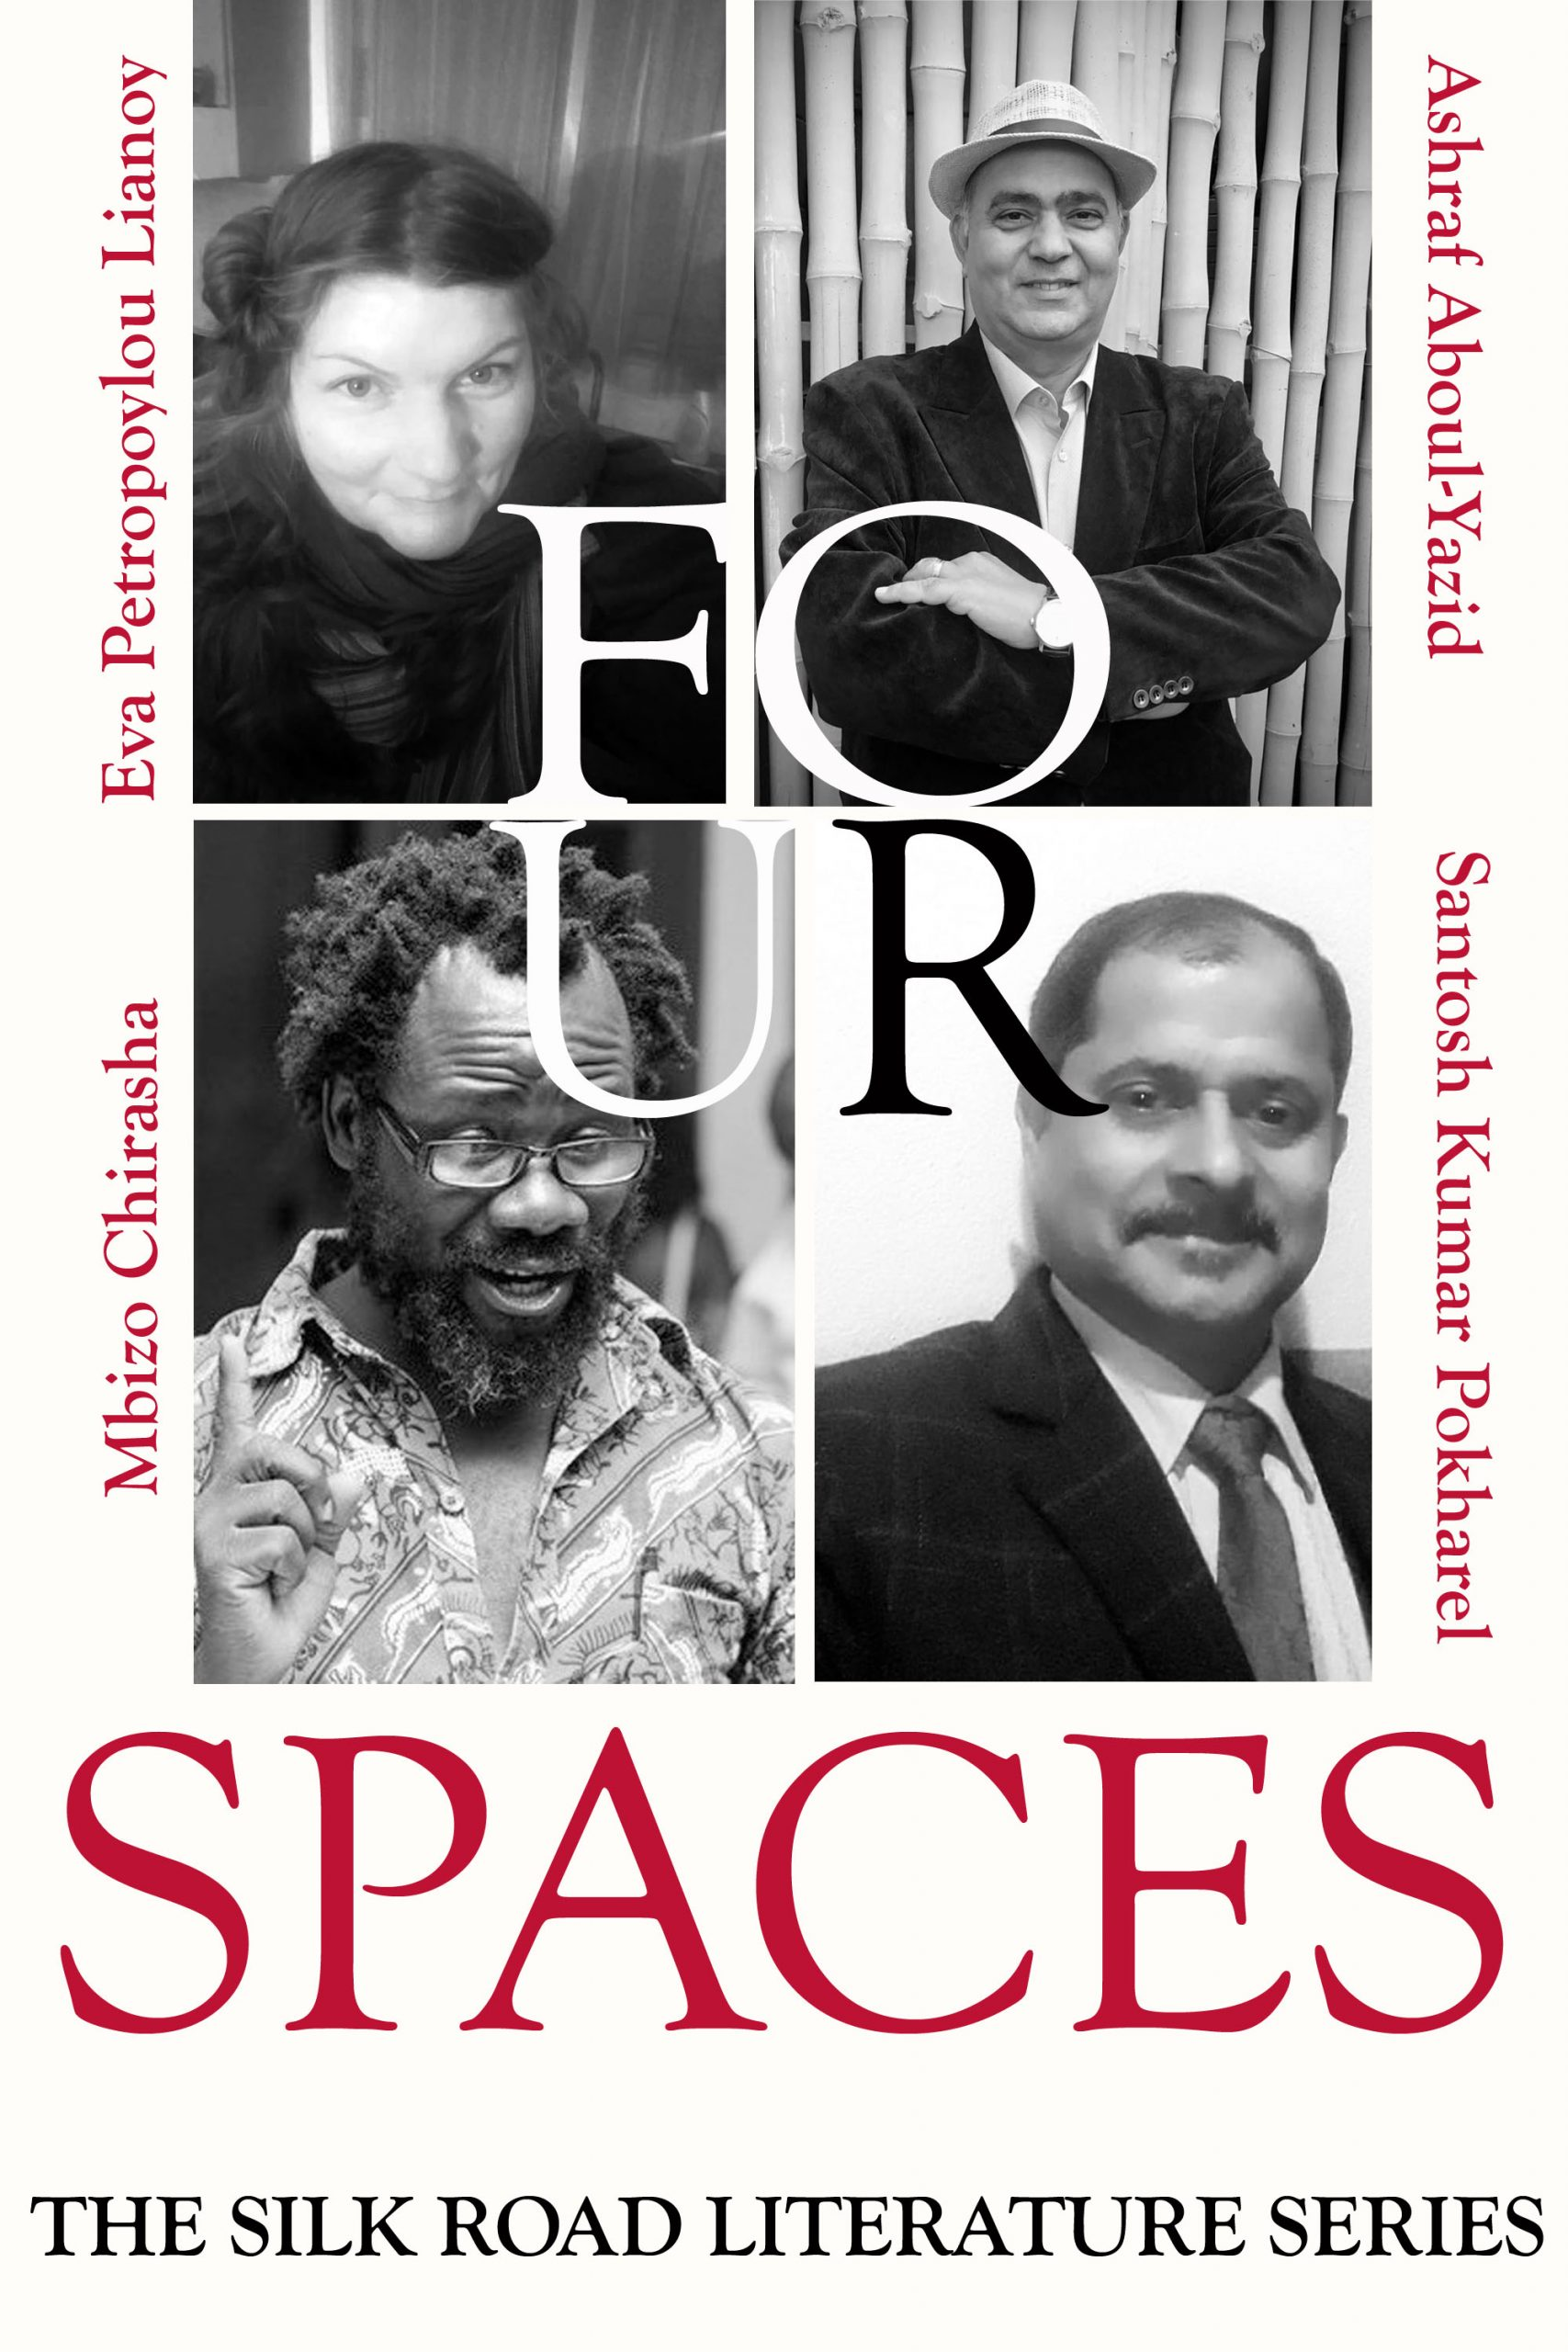 World Poets on the Silk Road - Four Spaces - cover photo- Sindh Courier